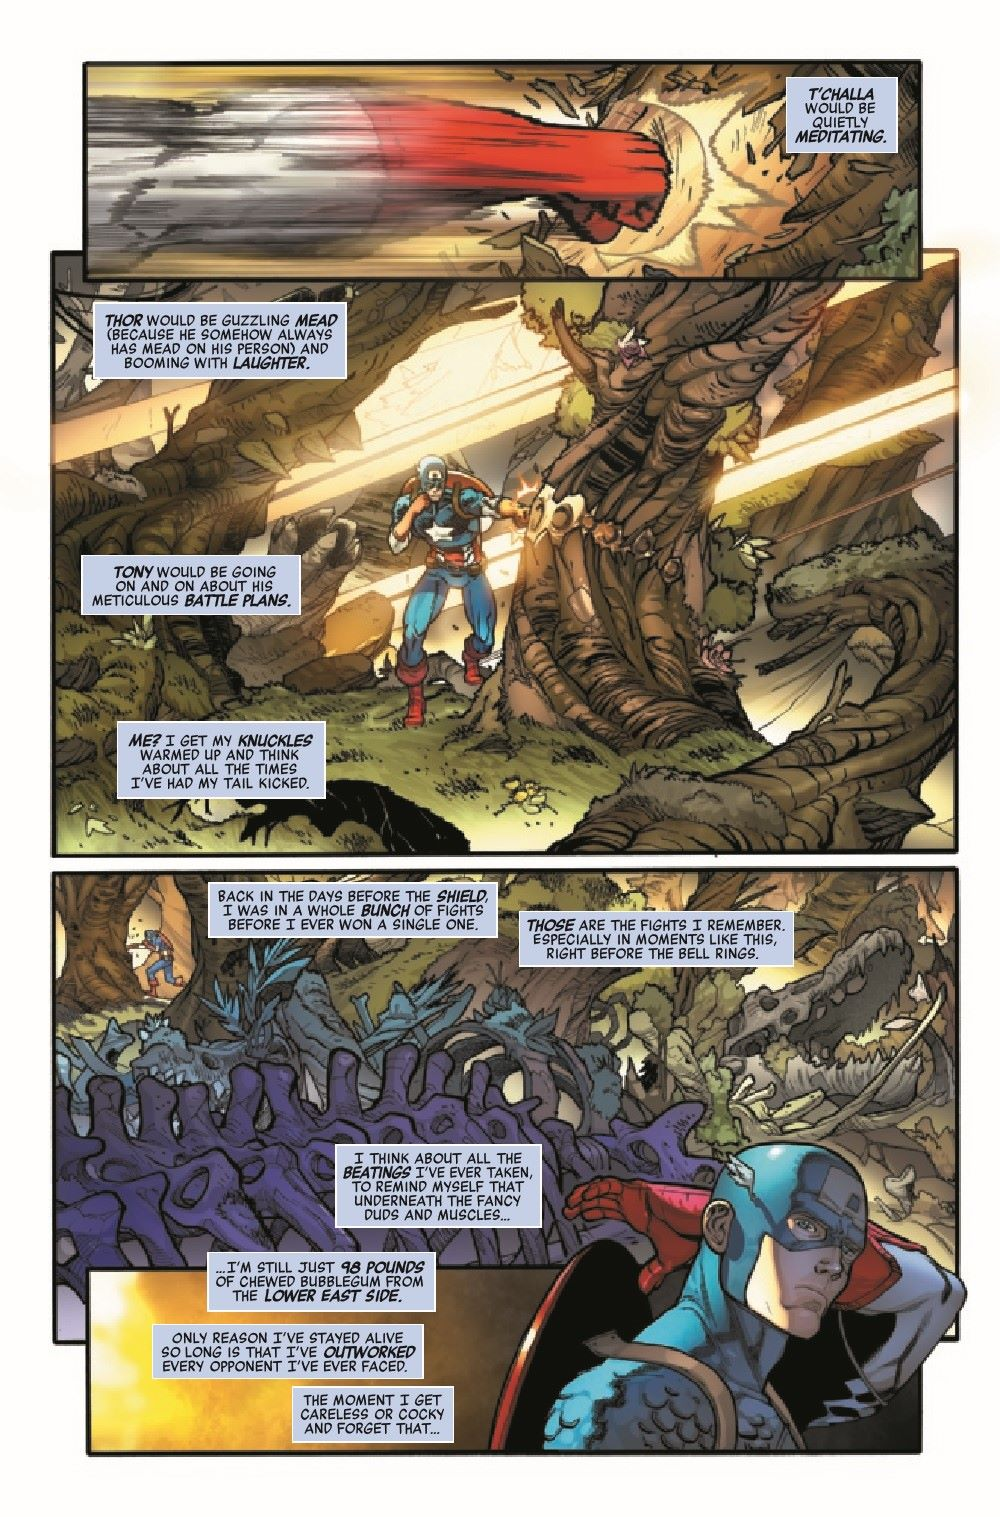 AVEN2018040_Preview-2 ComicList Previews: AVENGERS #40